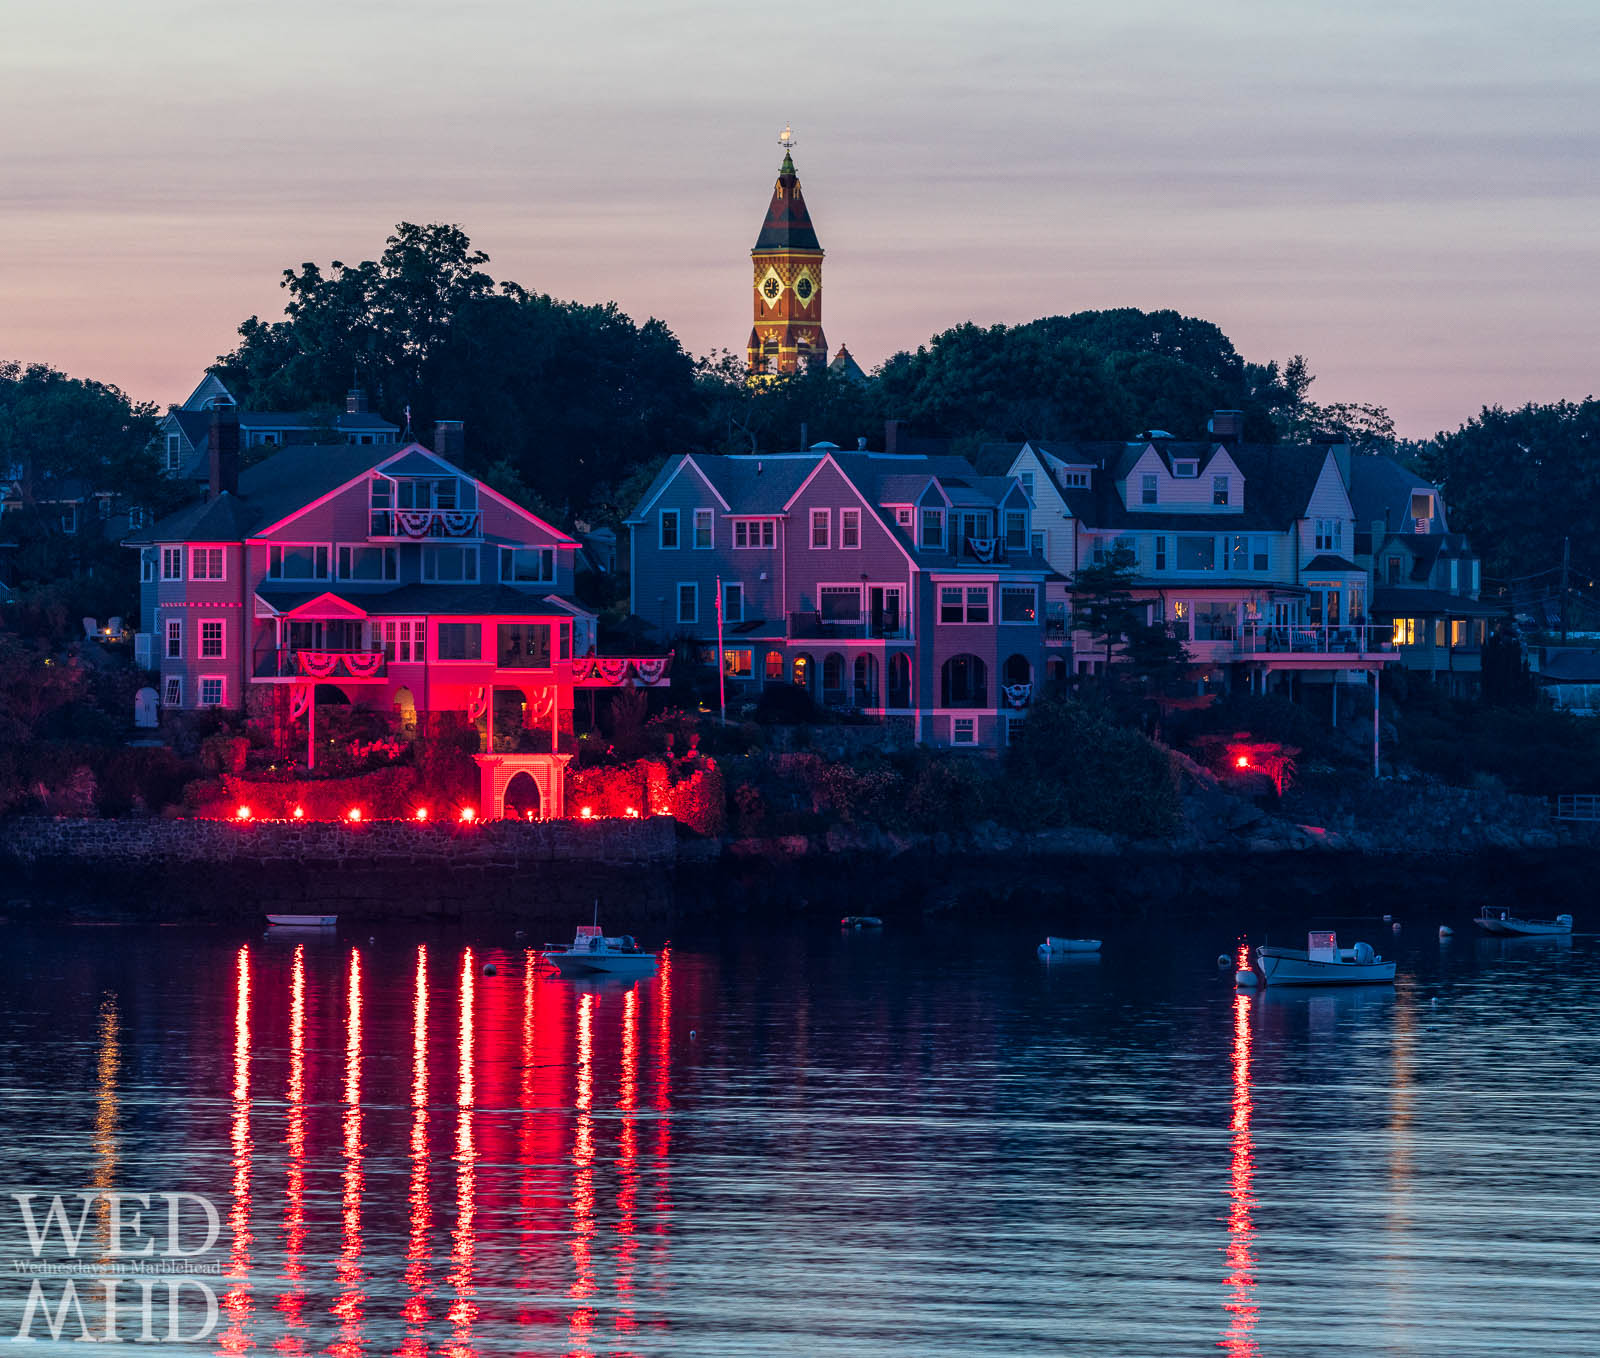 Abbot Hall stands tall over the flares circling the water during the annual harbor illumination in Marblehead